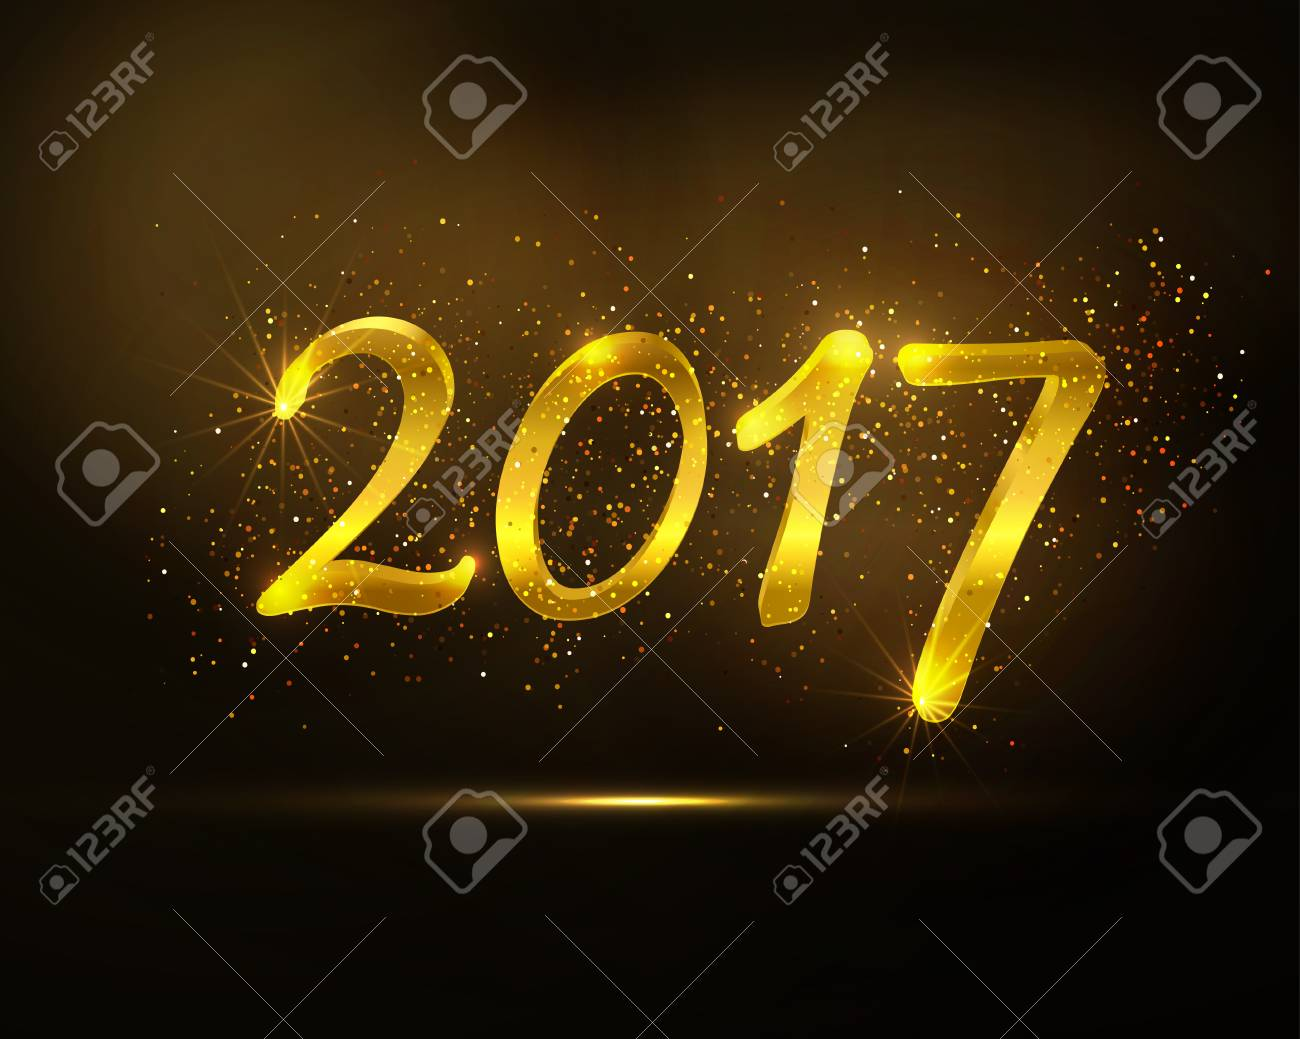 Happy new year greeting card vector golden glittering design happy new year greeting card vector golden glittering design 2017 trendy holiday background m4hsunfo